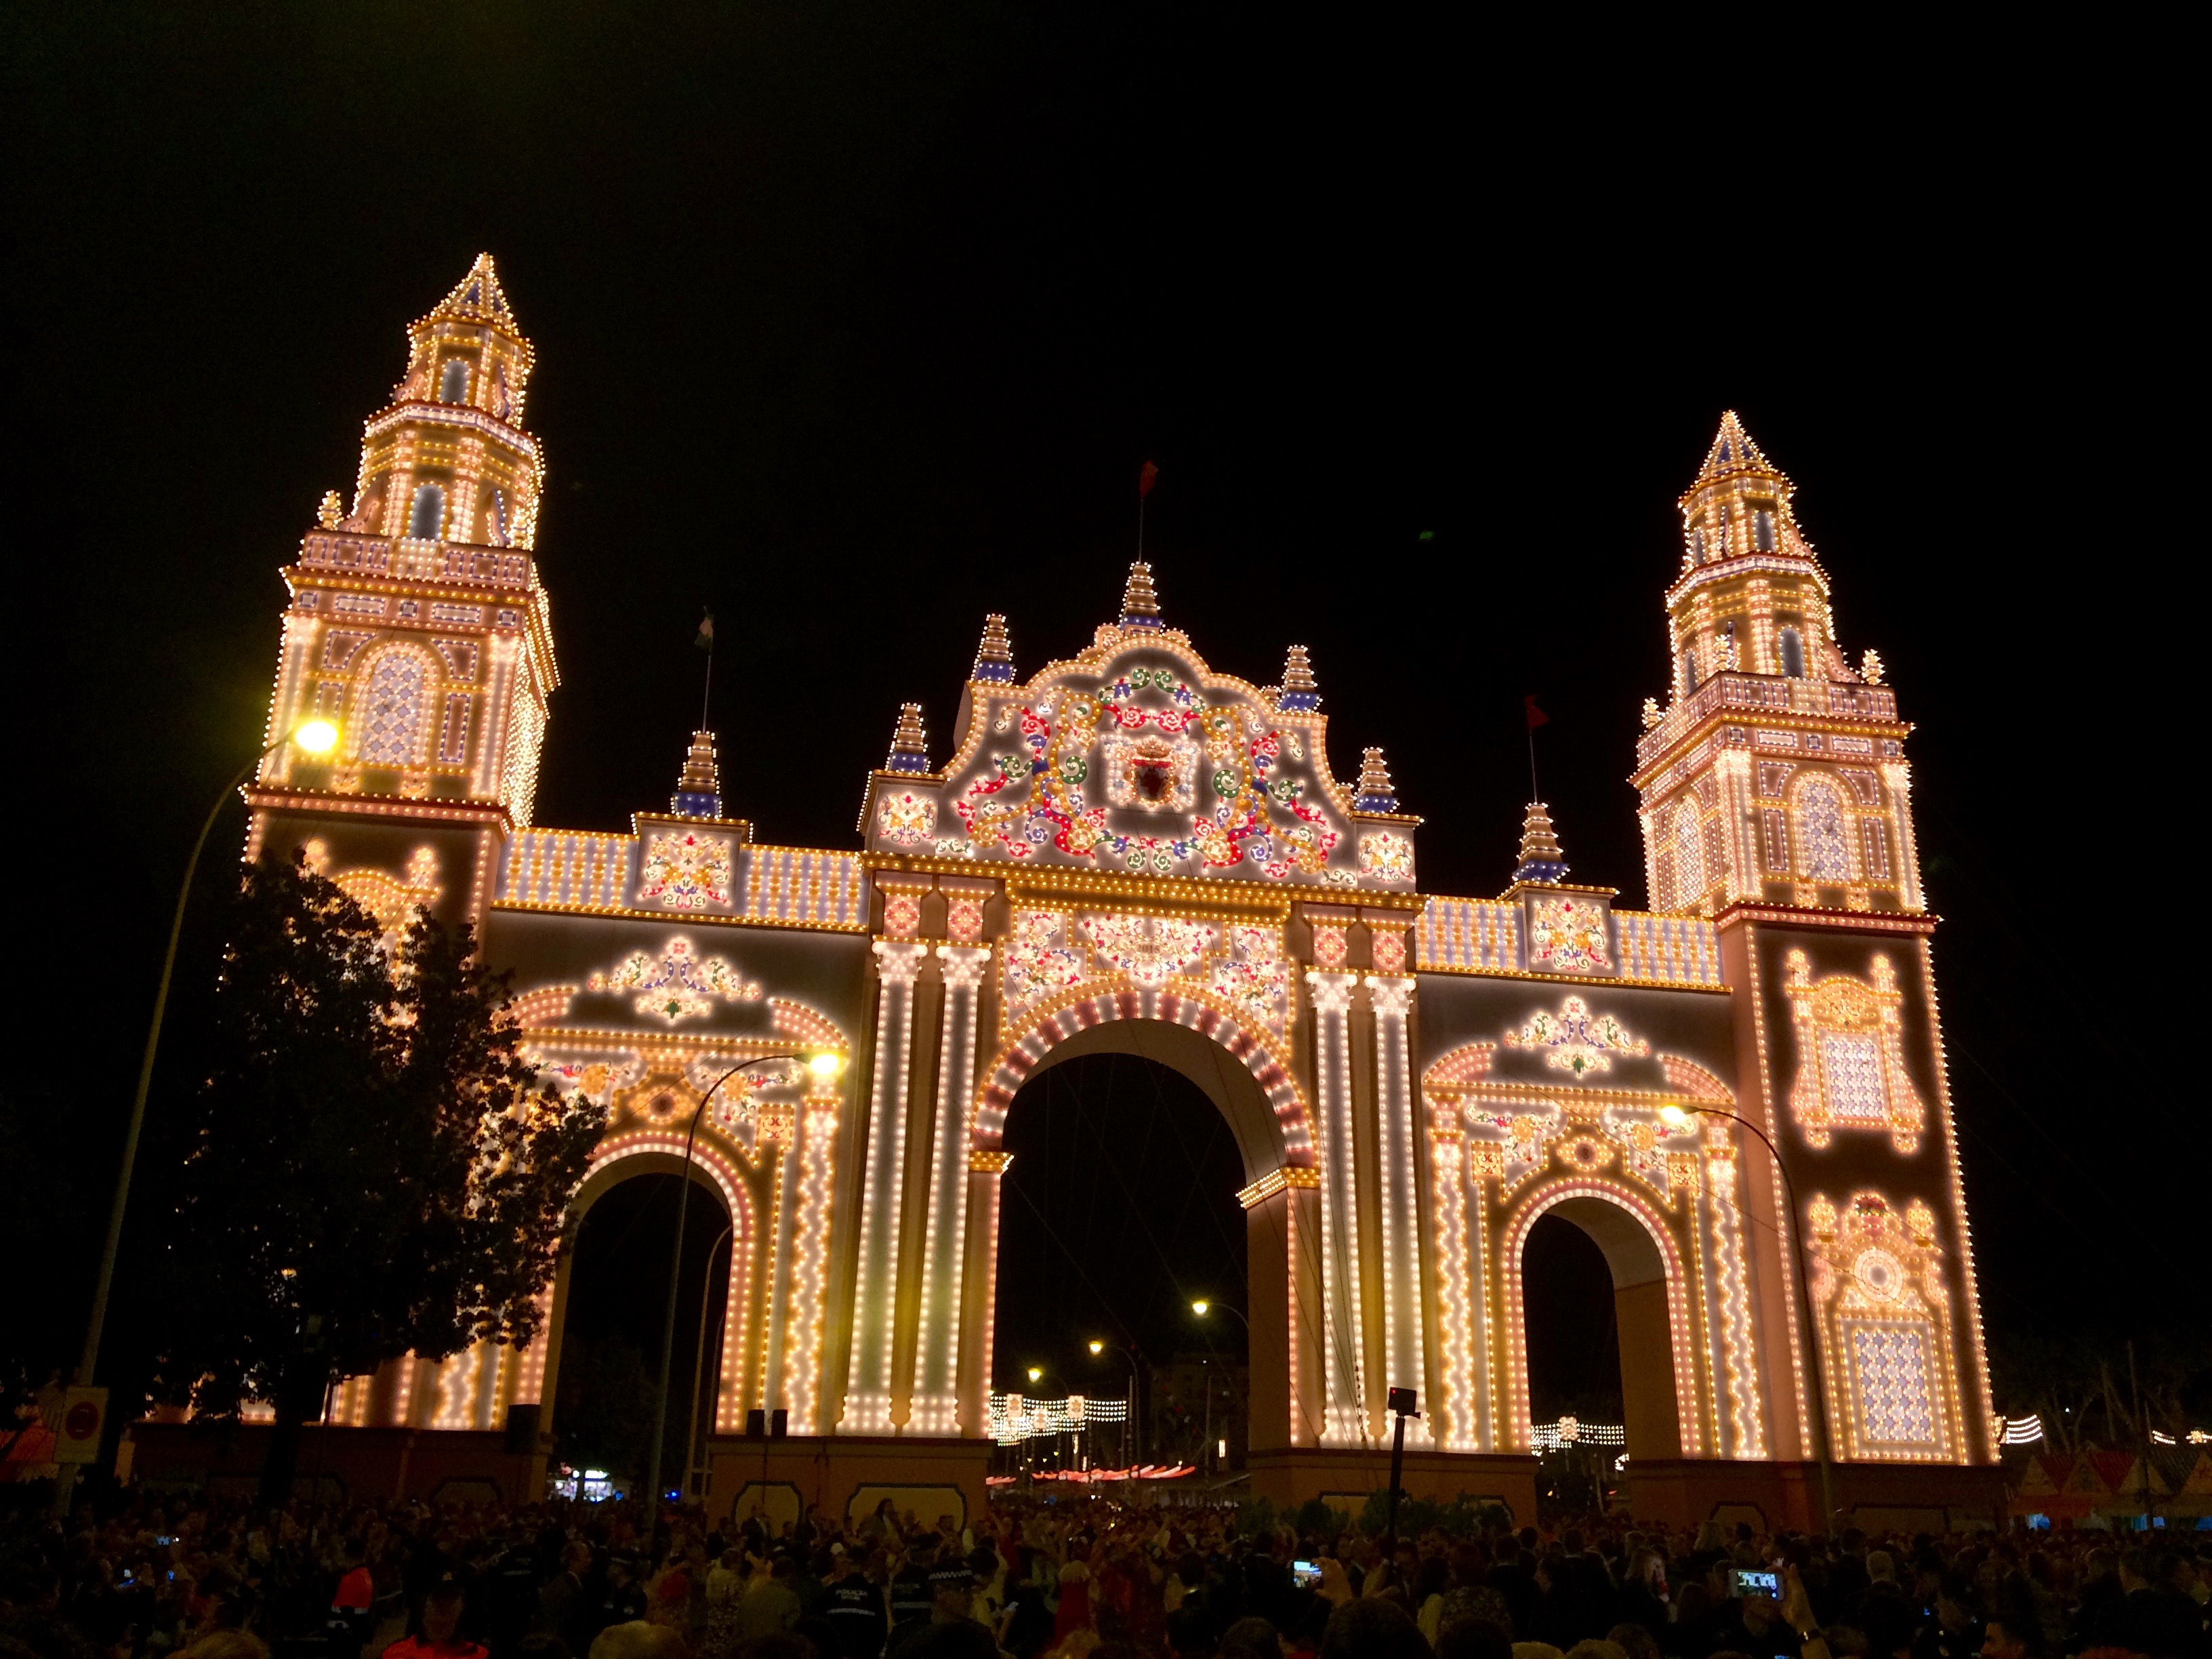 """La Portada,"" or the main entrance to La Feria."